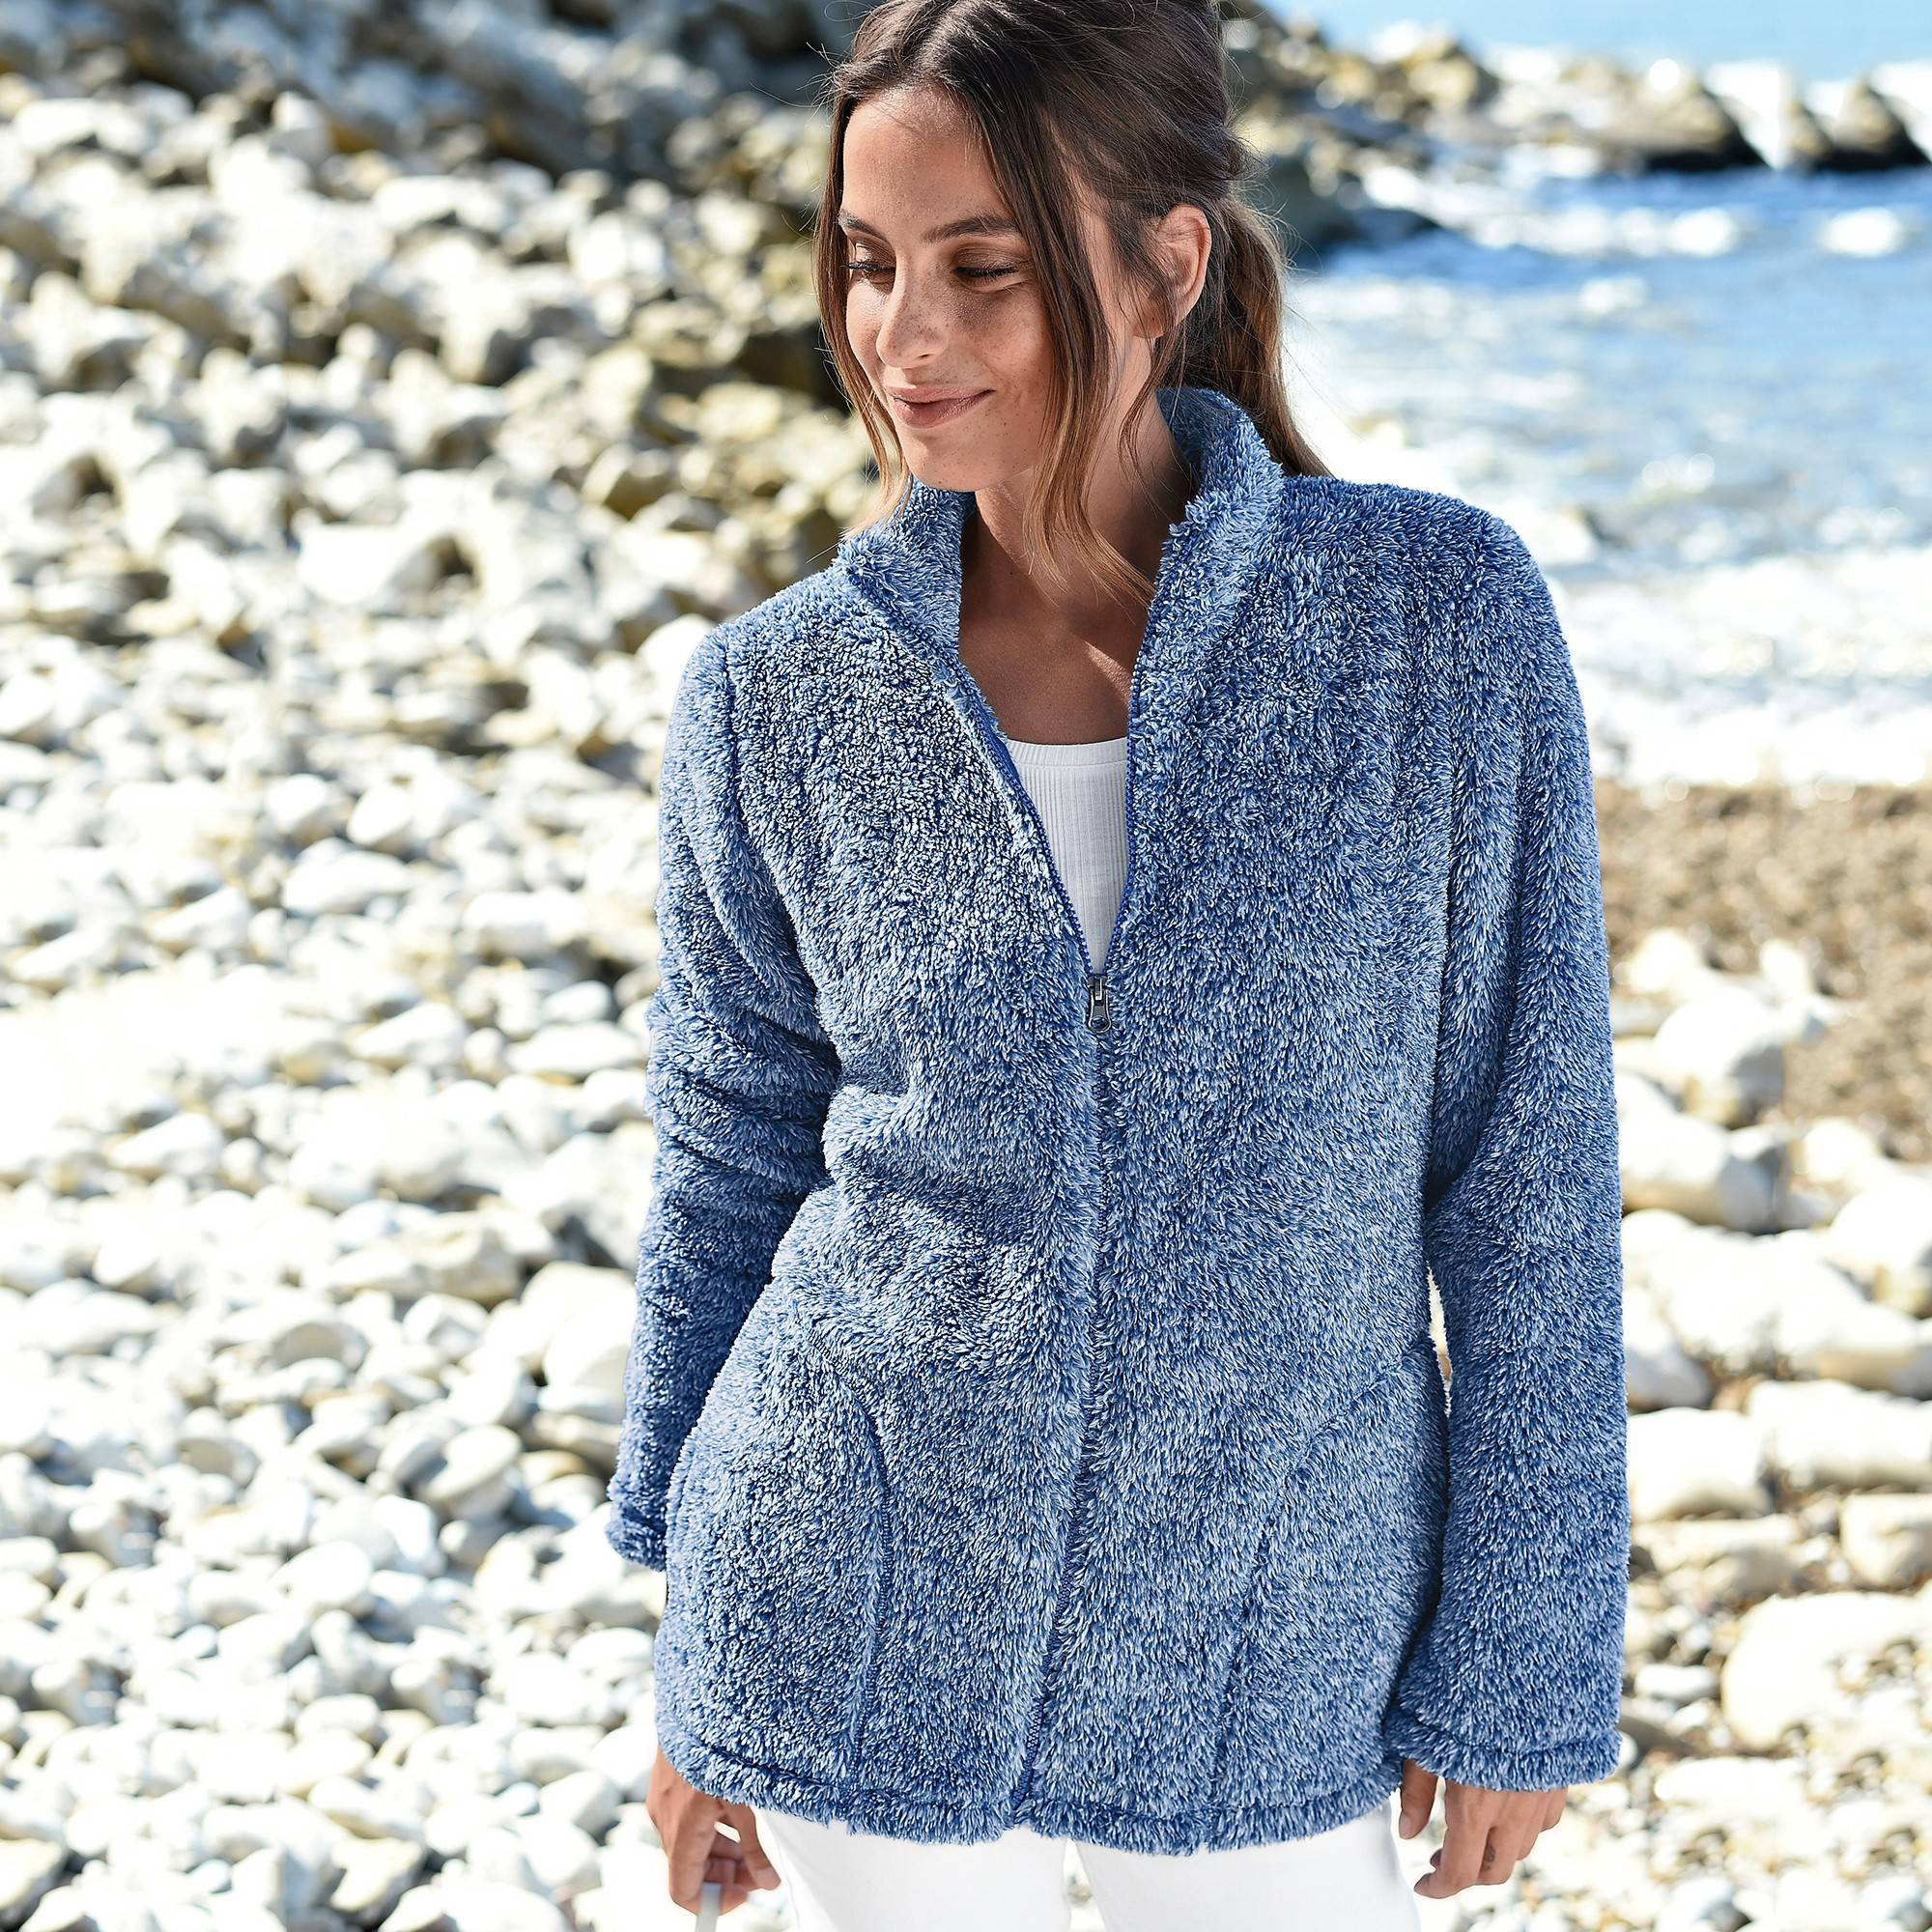 Casual Collection Veste maille peluche - Bleu - Taille : 42,44 - Blancheporte